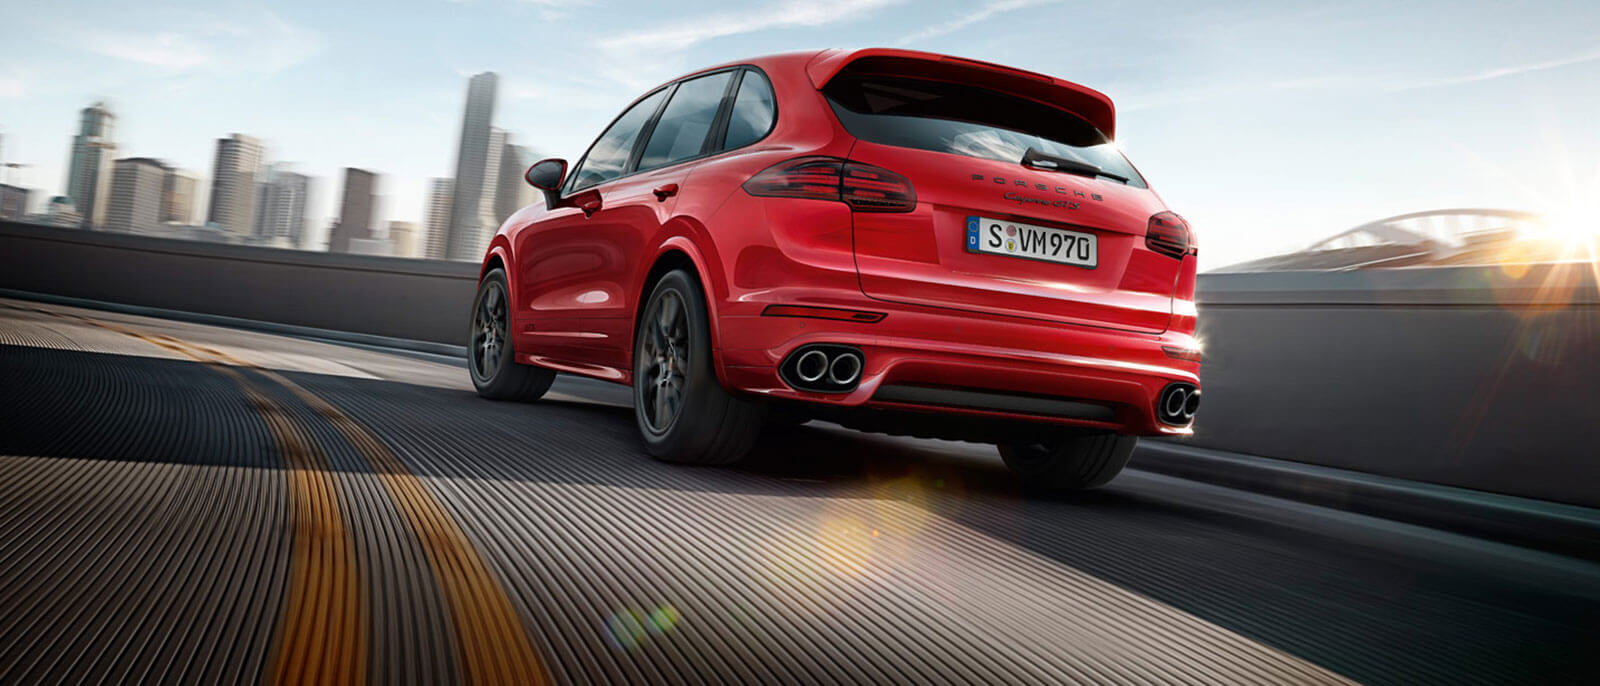 2016 Porsche Cayenne GTS on the highway